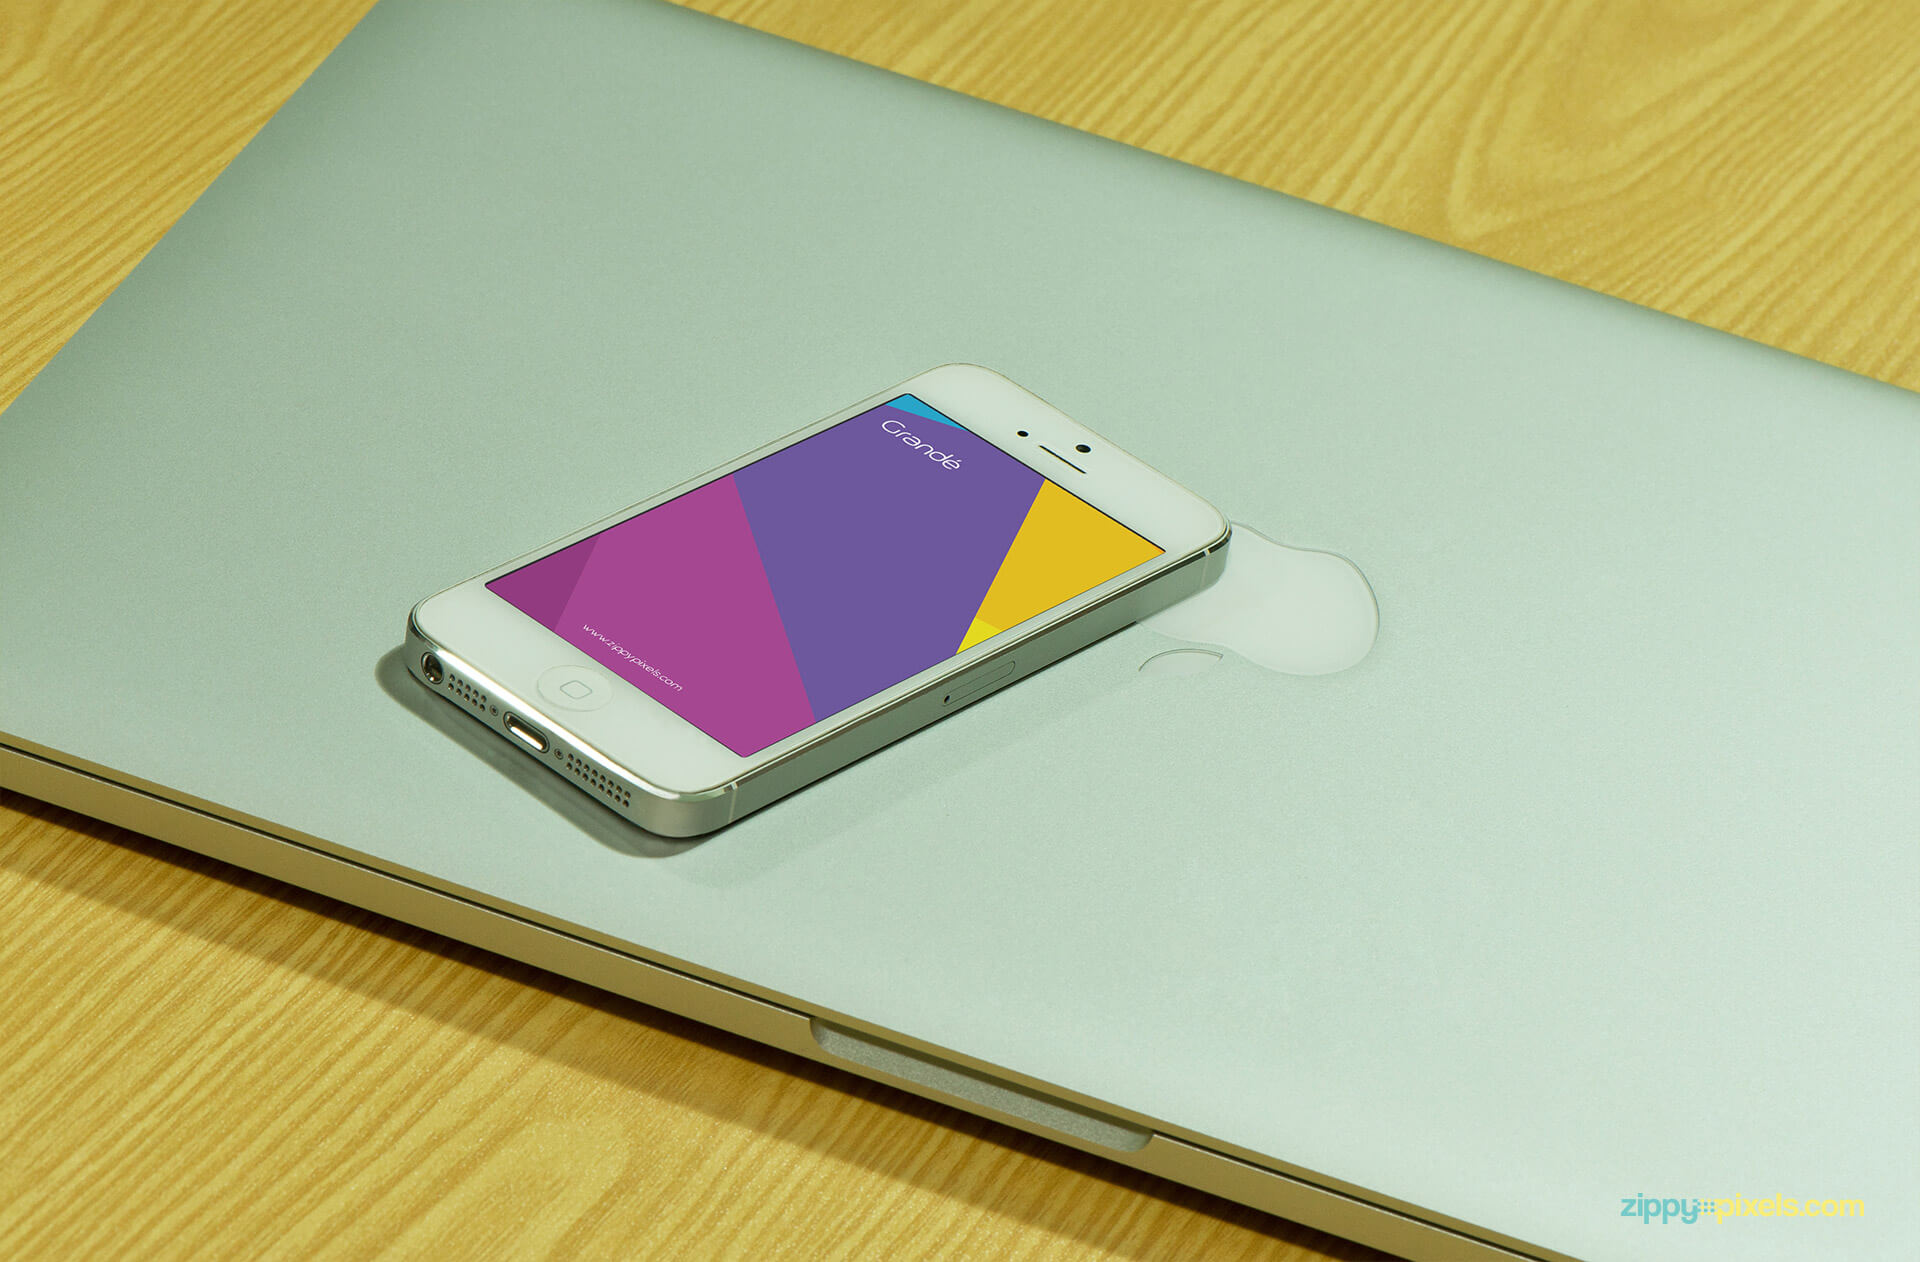 Device Branding Mockup of iPhone lying on a Closed Macbook Pro